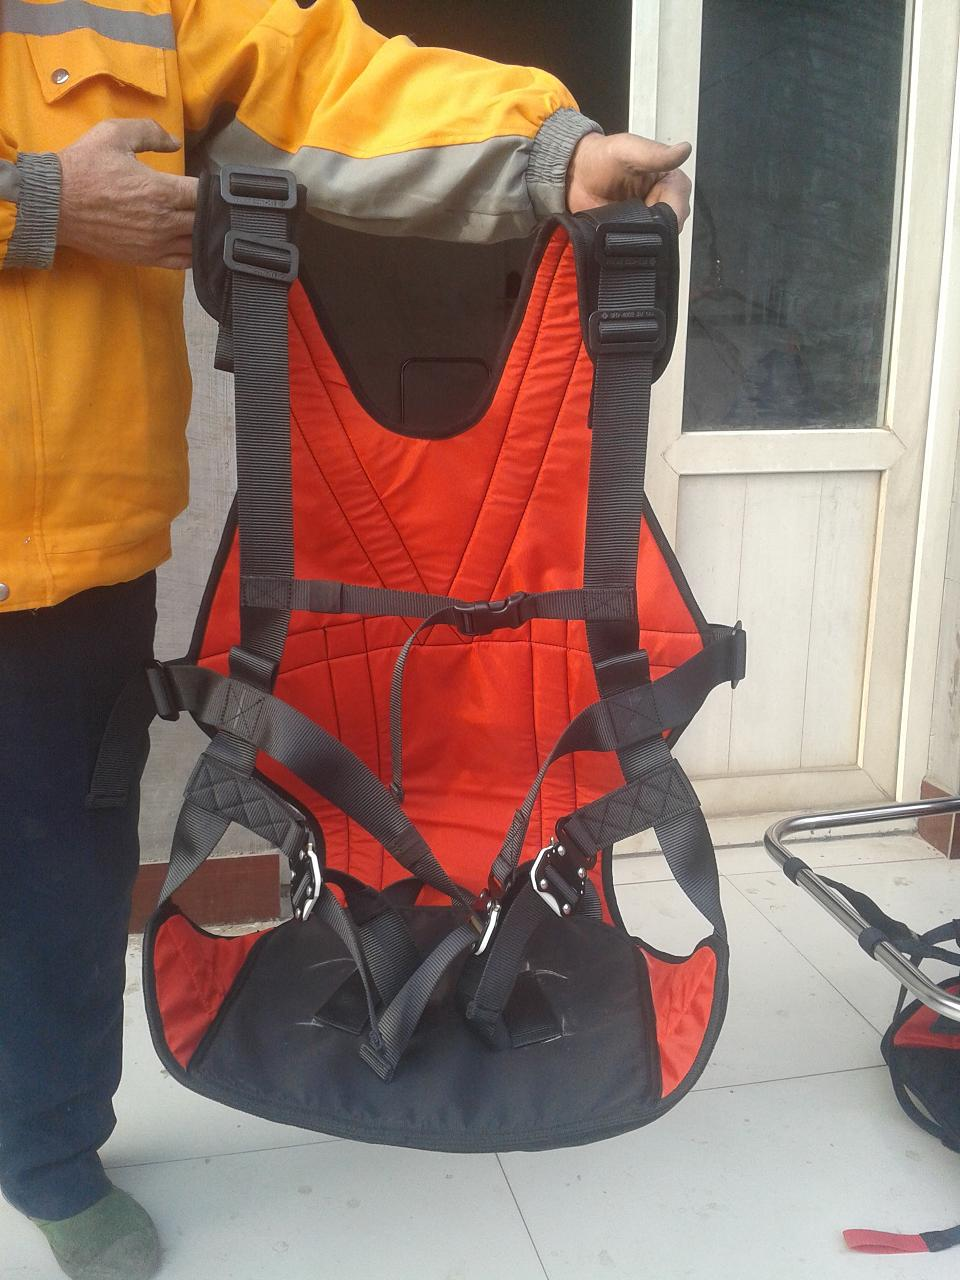 simple paraglider seat bag special for beginner training kel butcher forex made simple a beginner s guide to foreign exchange success